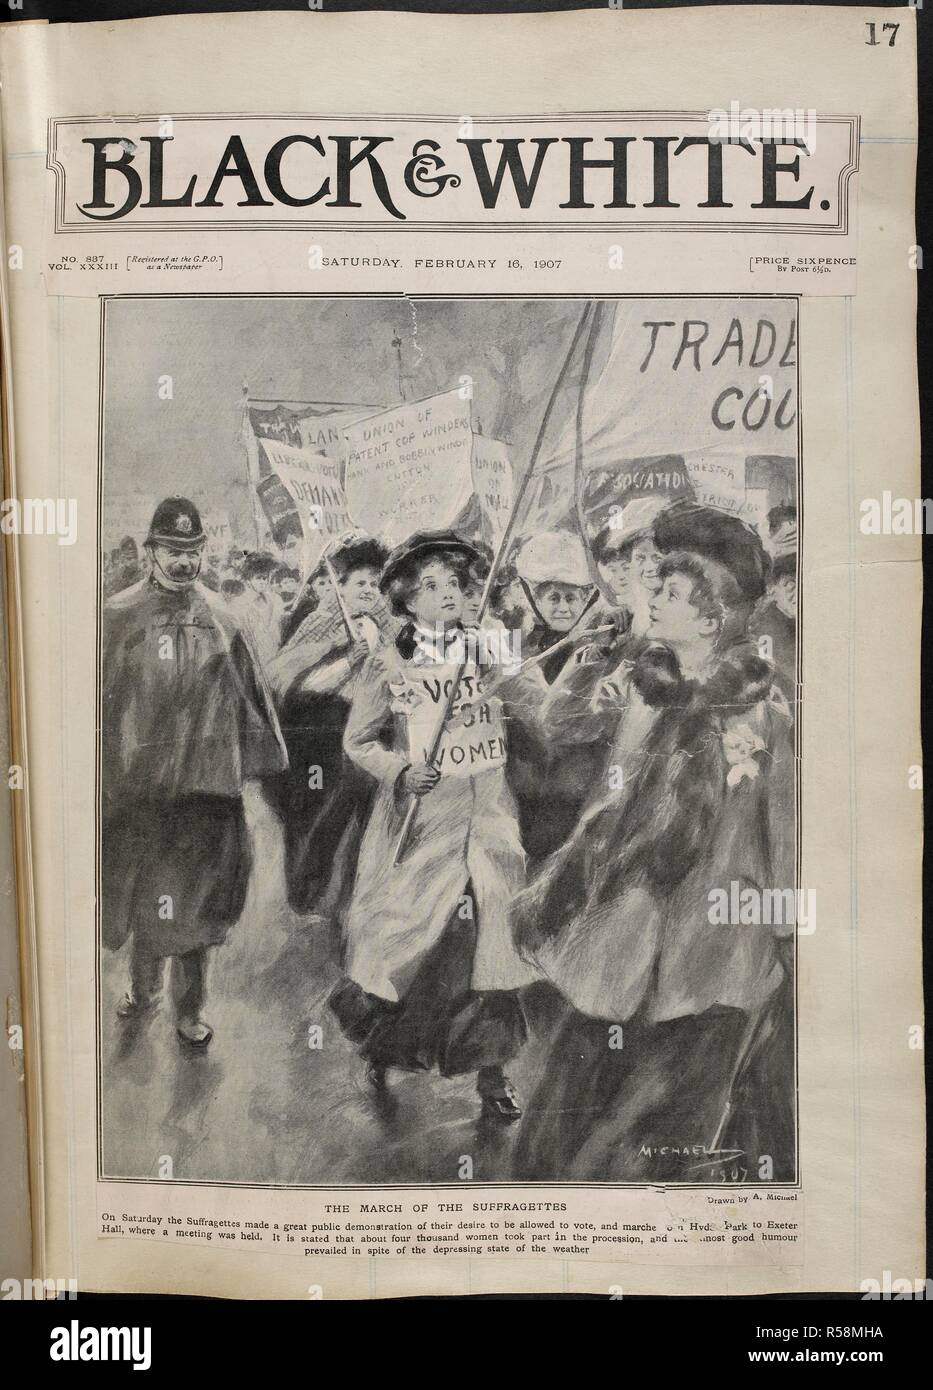 Front cover of 'Black & White.' The march of the suffragettes. . [A collection of press cuttings, pamphlets, leaflets and letters mainly relating to the movement for women's suffrage in England, formed and annotated by M. Arncliffe Sennett.]. London, 1907. Source: C.121.g.1 vol.XXXIII n.887, February 16, 1907. - Stock Image